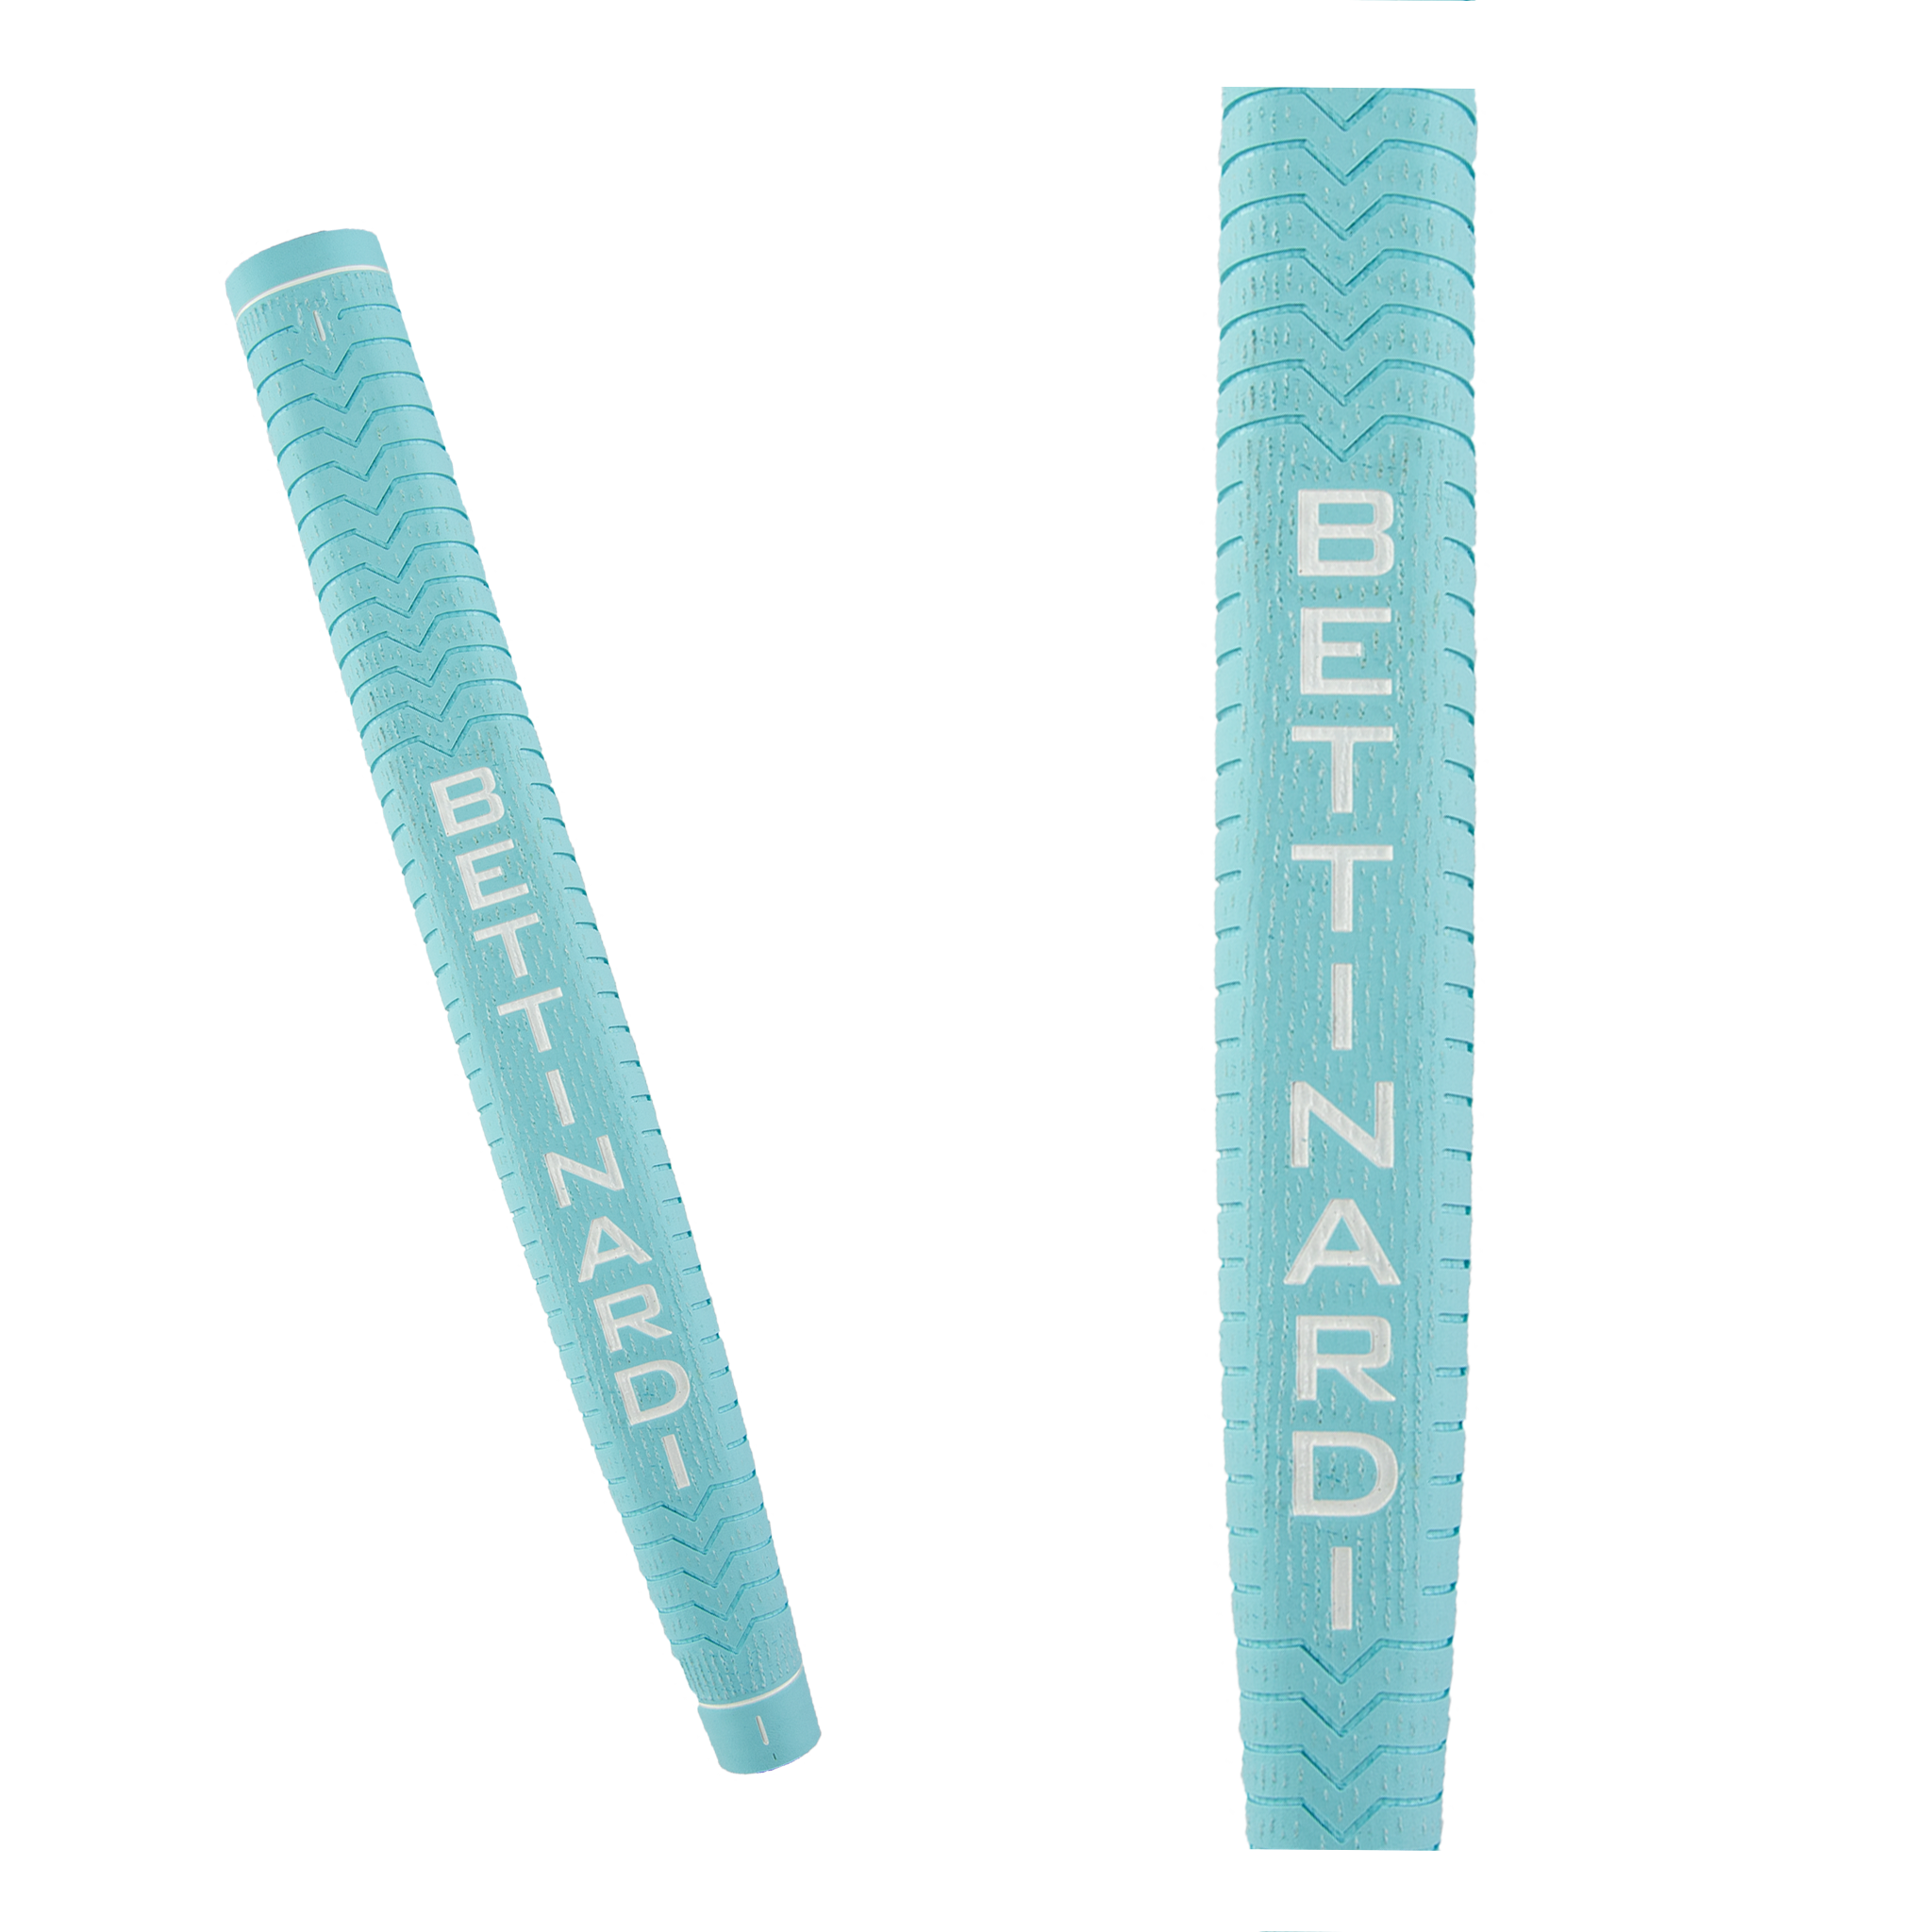 Bettinardi Queen B Series (Jumbo)